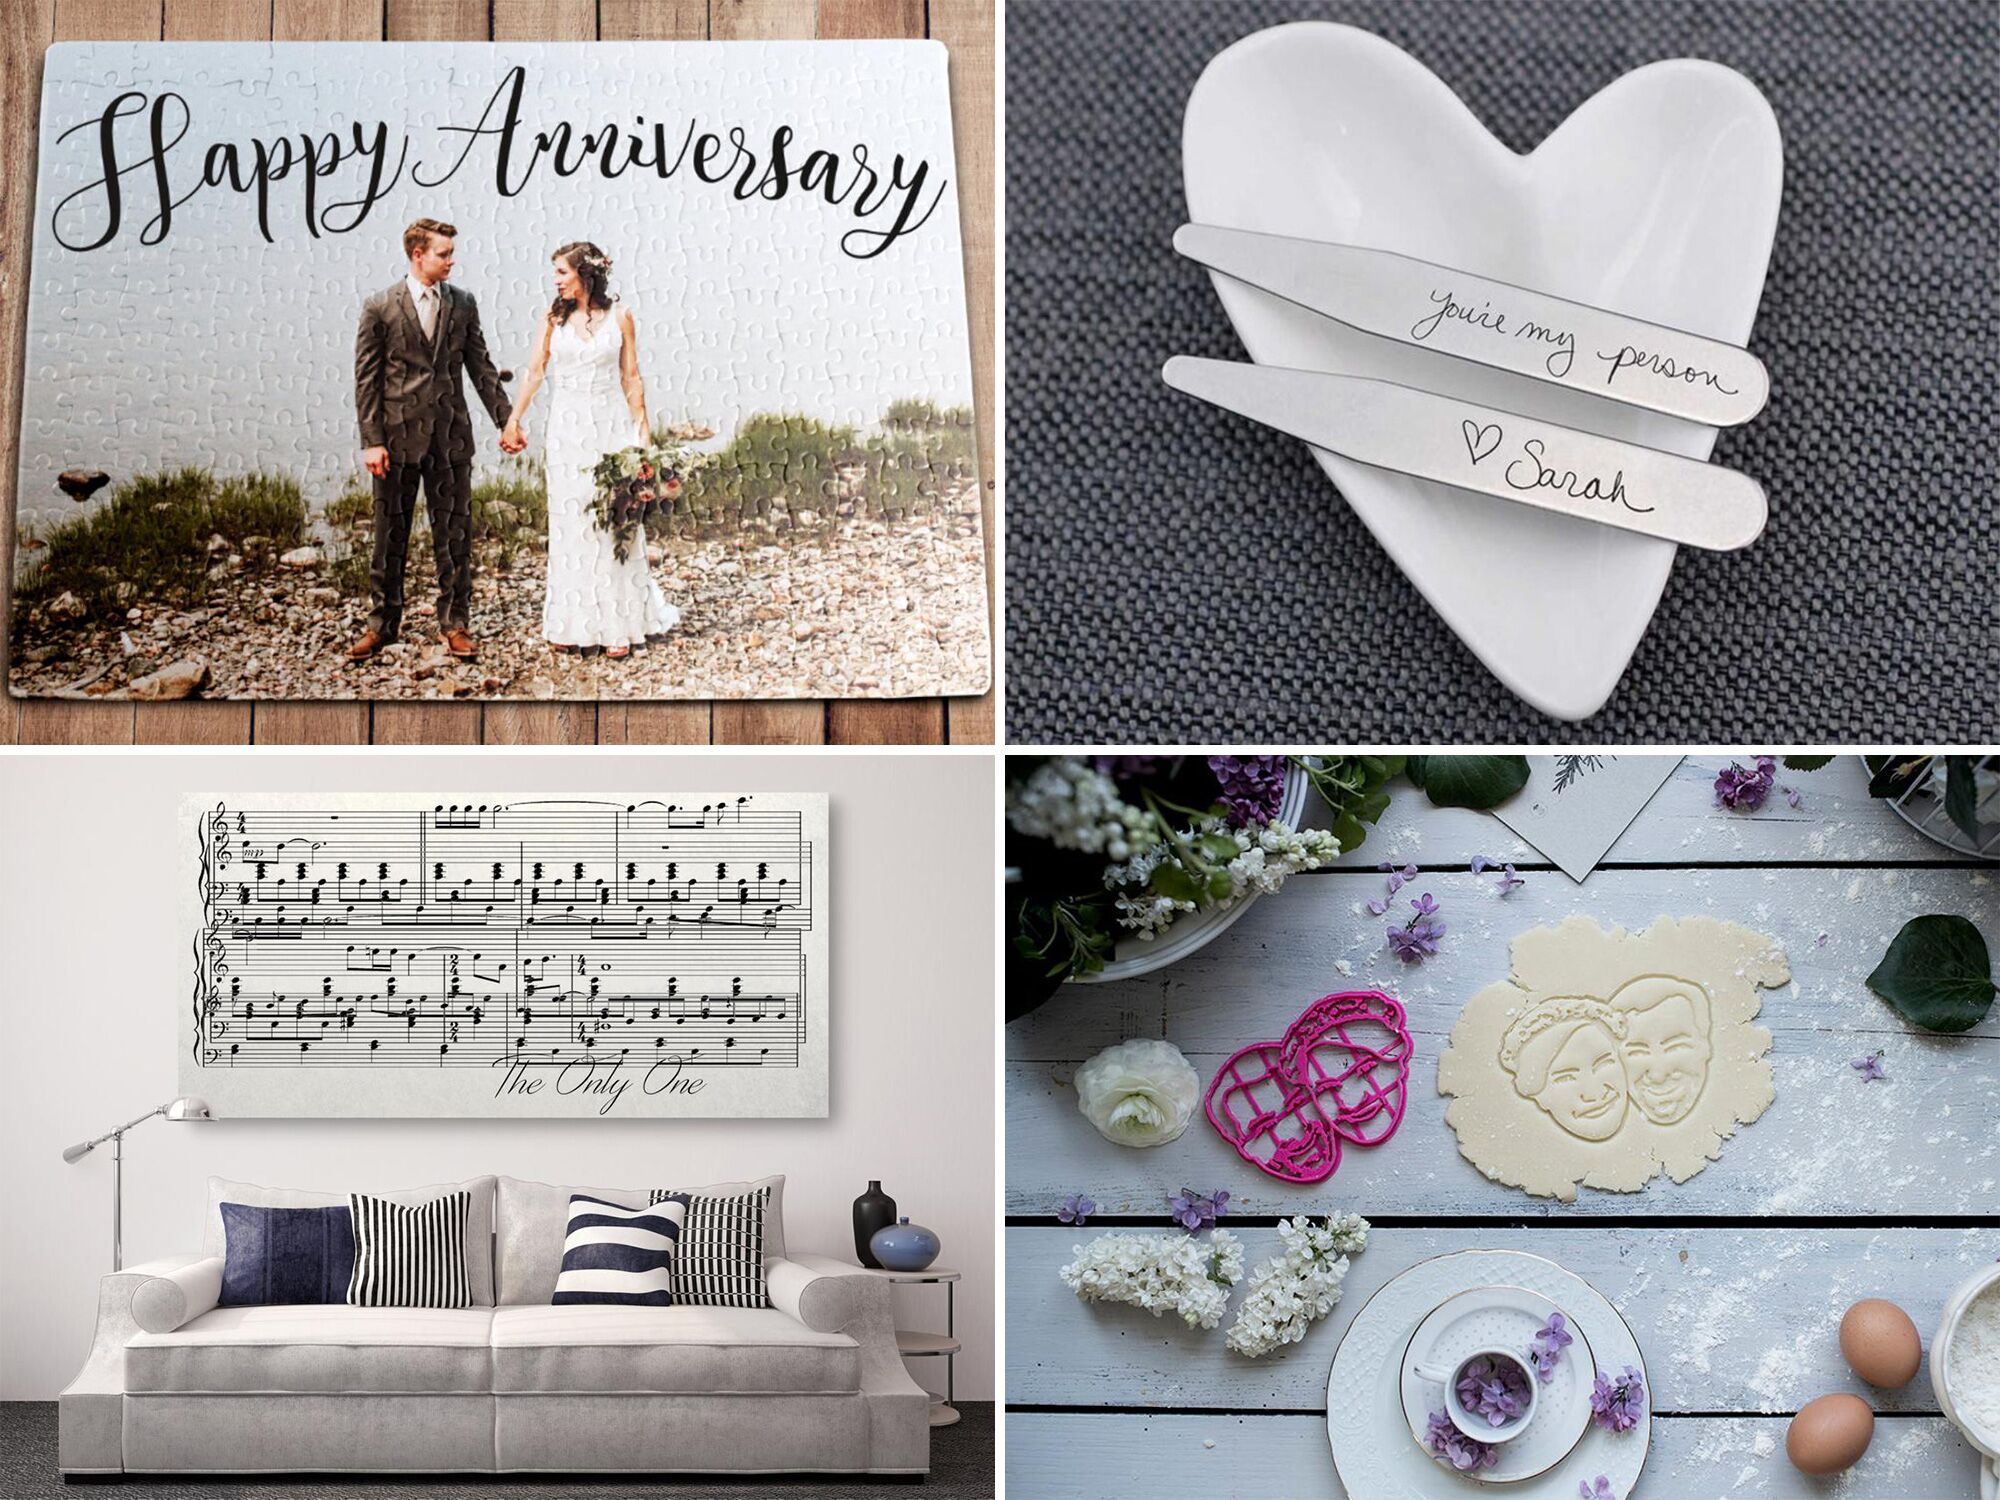 25th Anniversary Gifts For Her Him Or Them